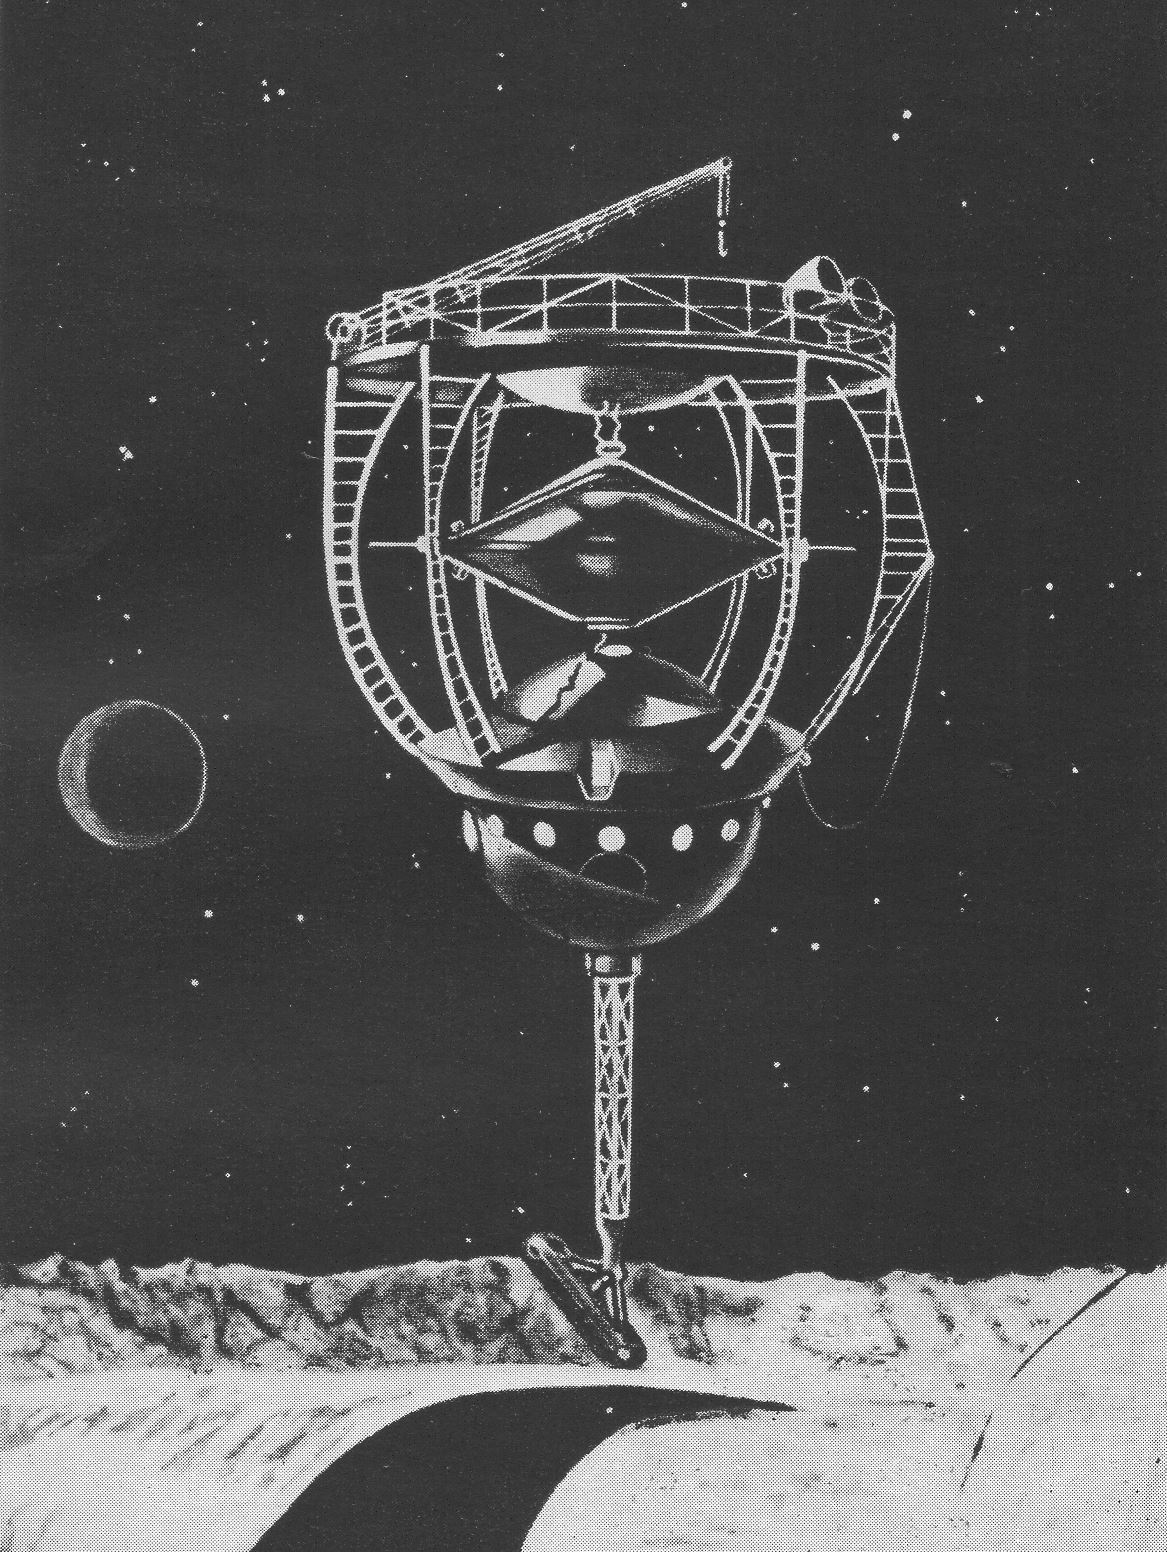 The Moon car - Draft by Hermann Oberth